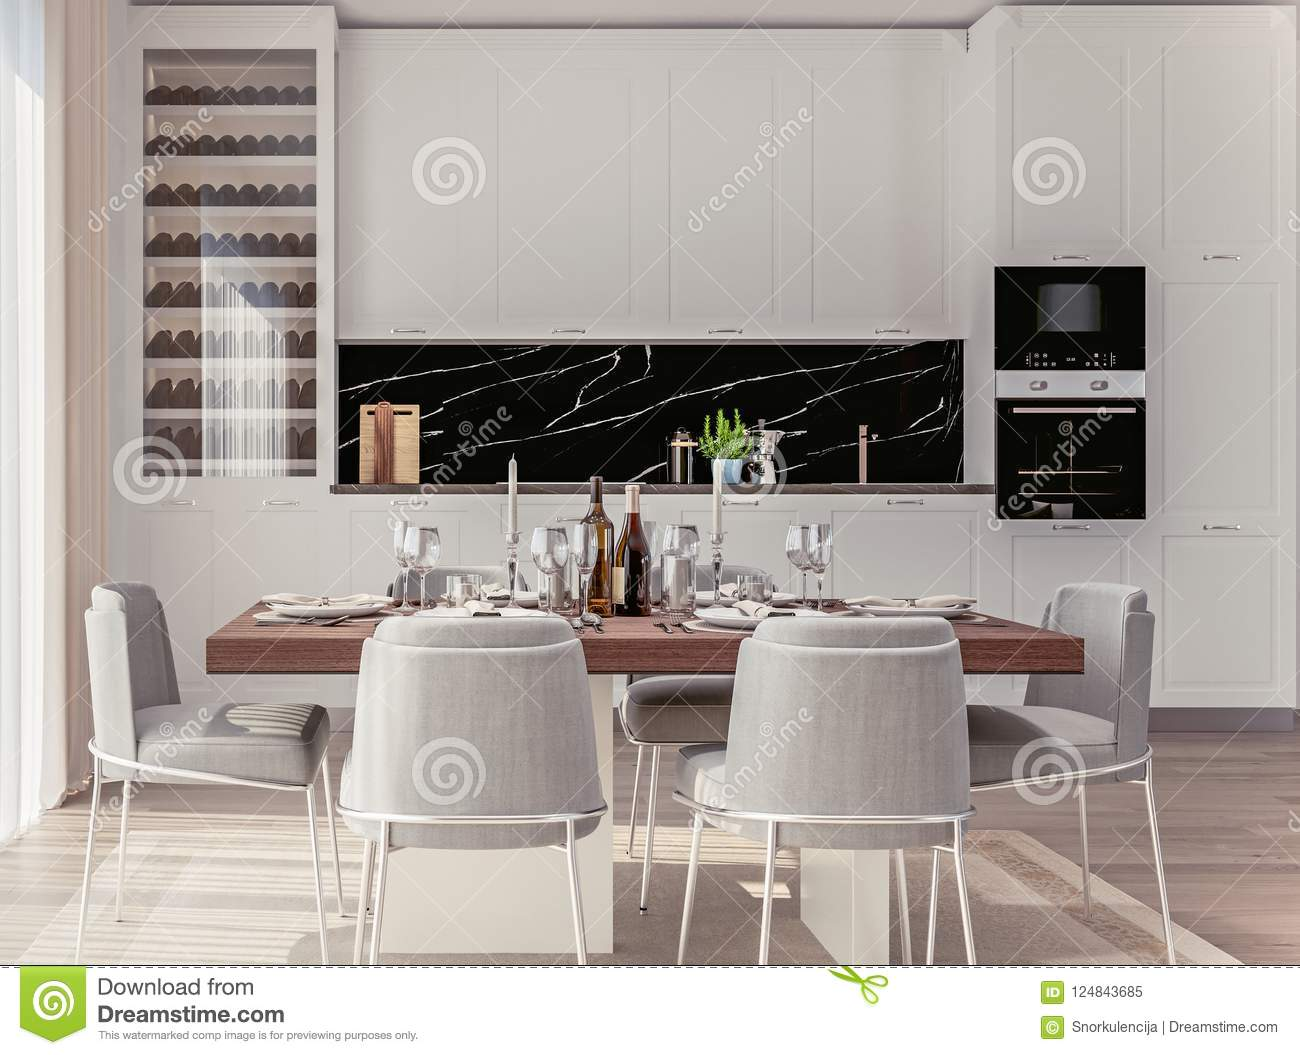 Stylish Home Interior With Open Plan Kitchen And Dining Area With